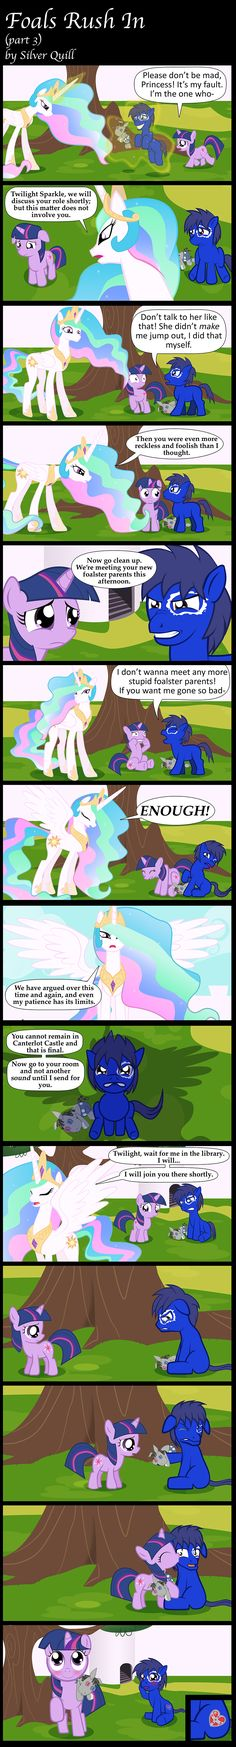 Foals Rush In (part 3) by MLP-Silver-Quill.deviantart.com on @deviantART